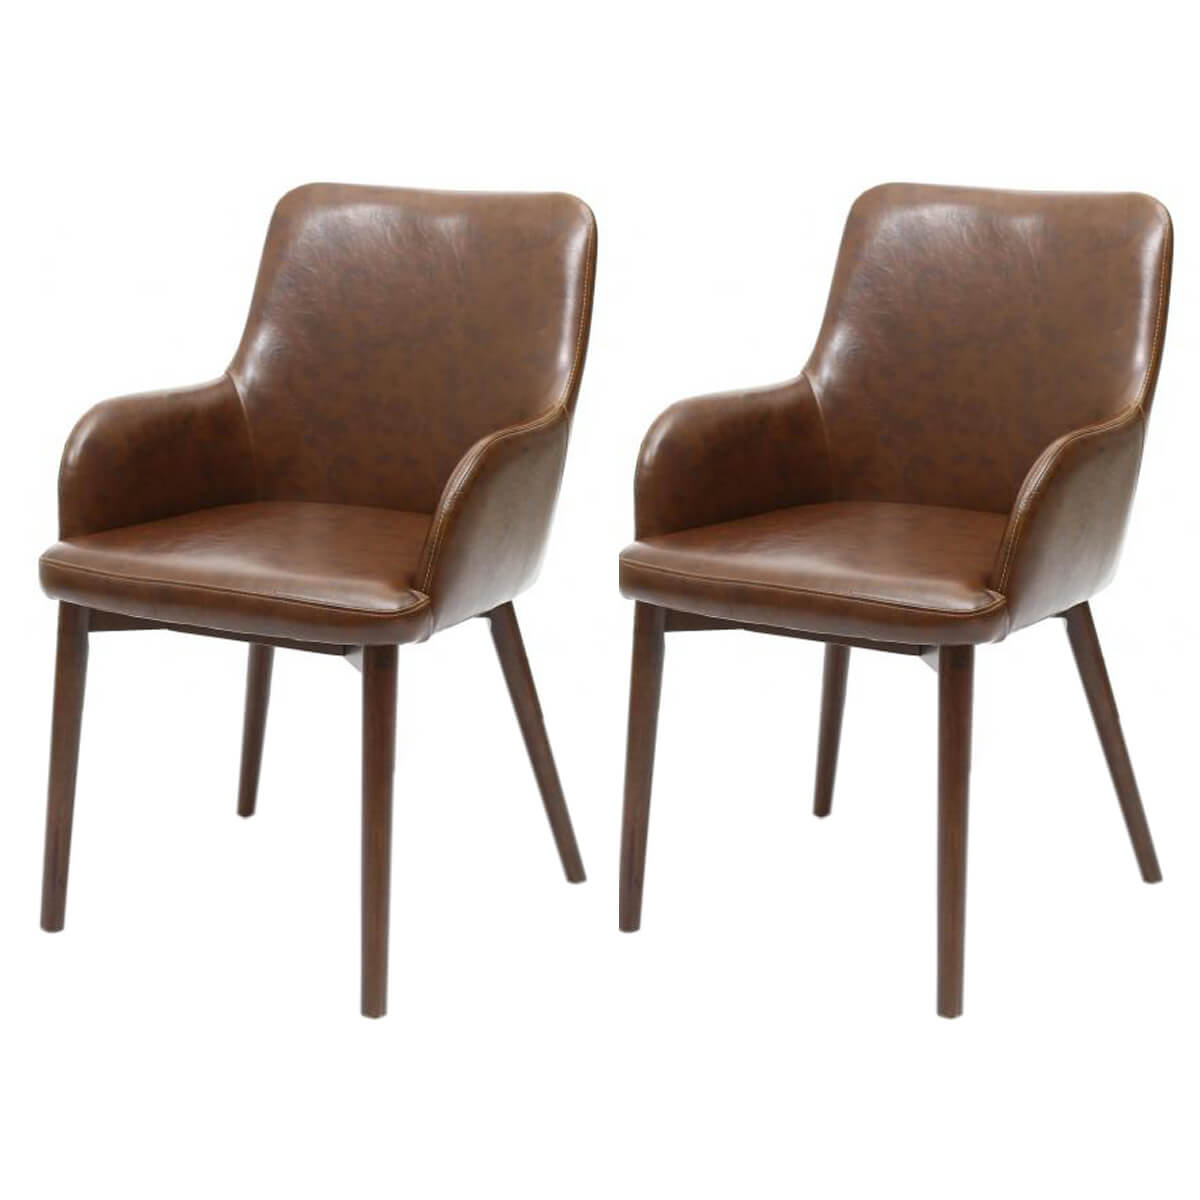 Brown Leather Dining Room Chairs: Sidcup Vintage Brown Leather Dining Chairs